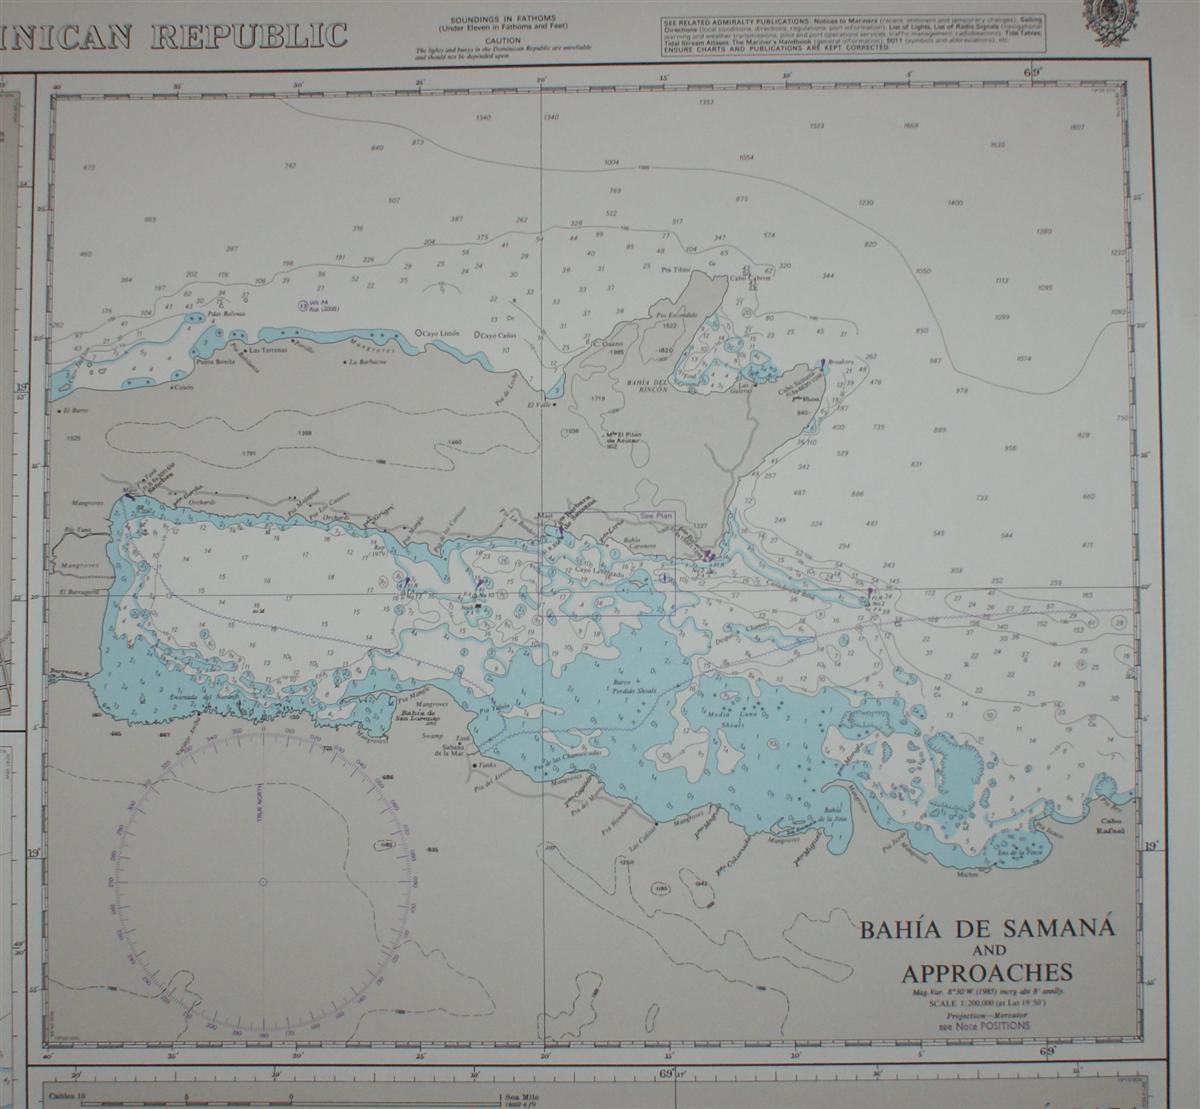 Image for Nautical Chart No. 463 West Indies - Plans on the North Coast of the Dominican Republic